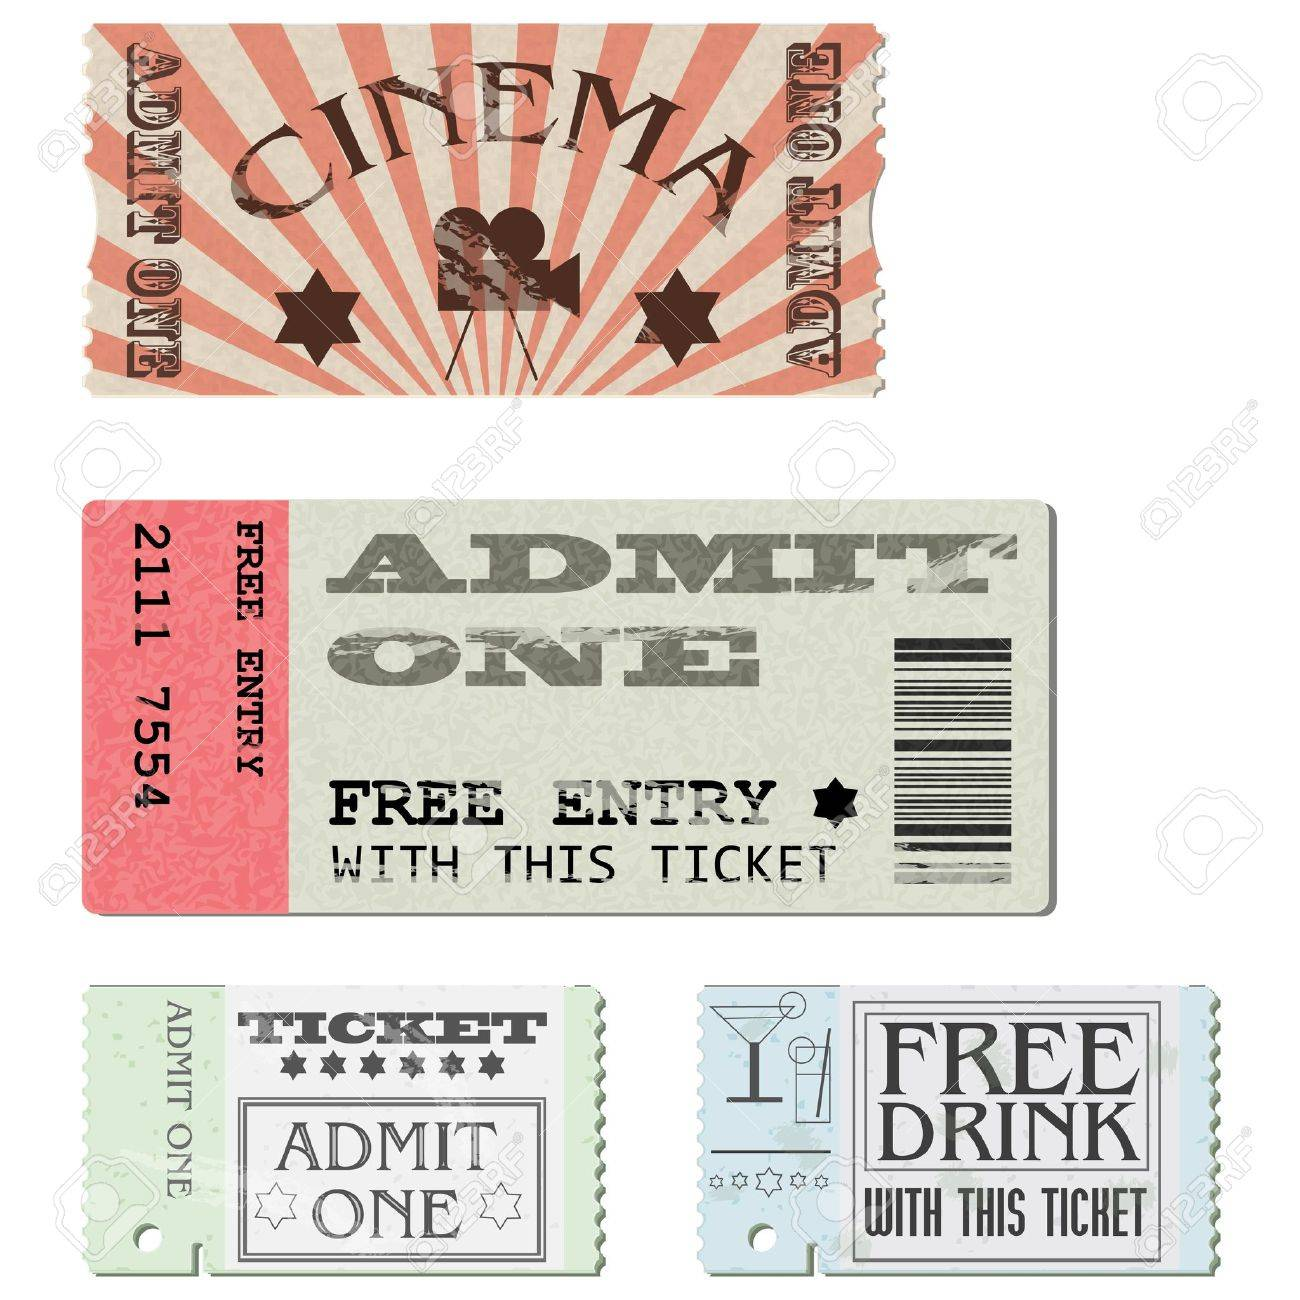 Tickets in different styles Stock Vector - 13119977